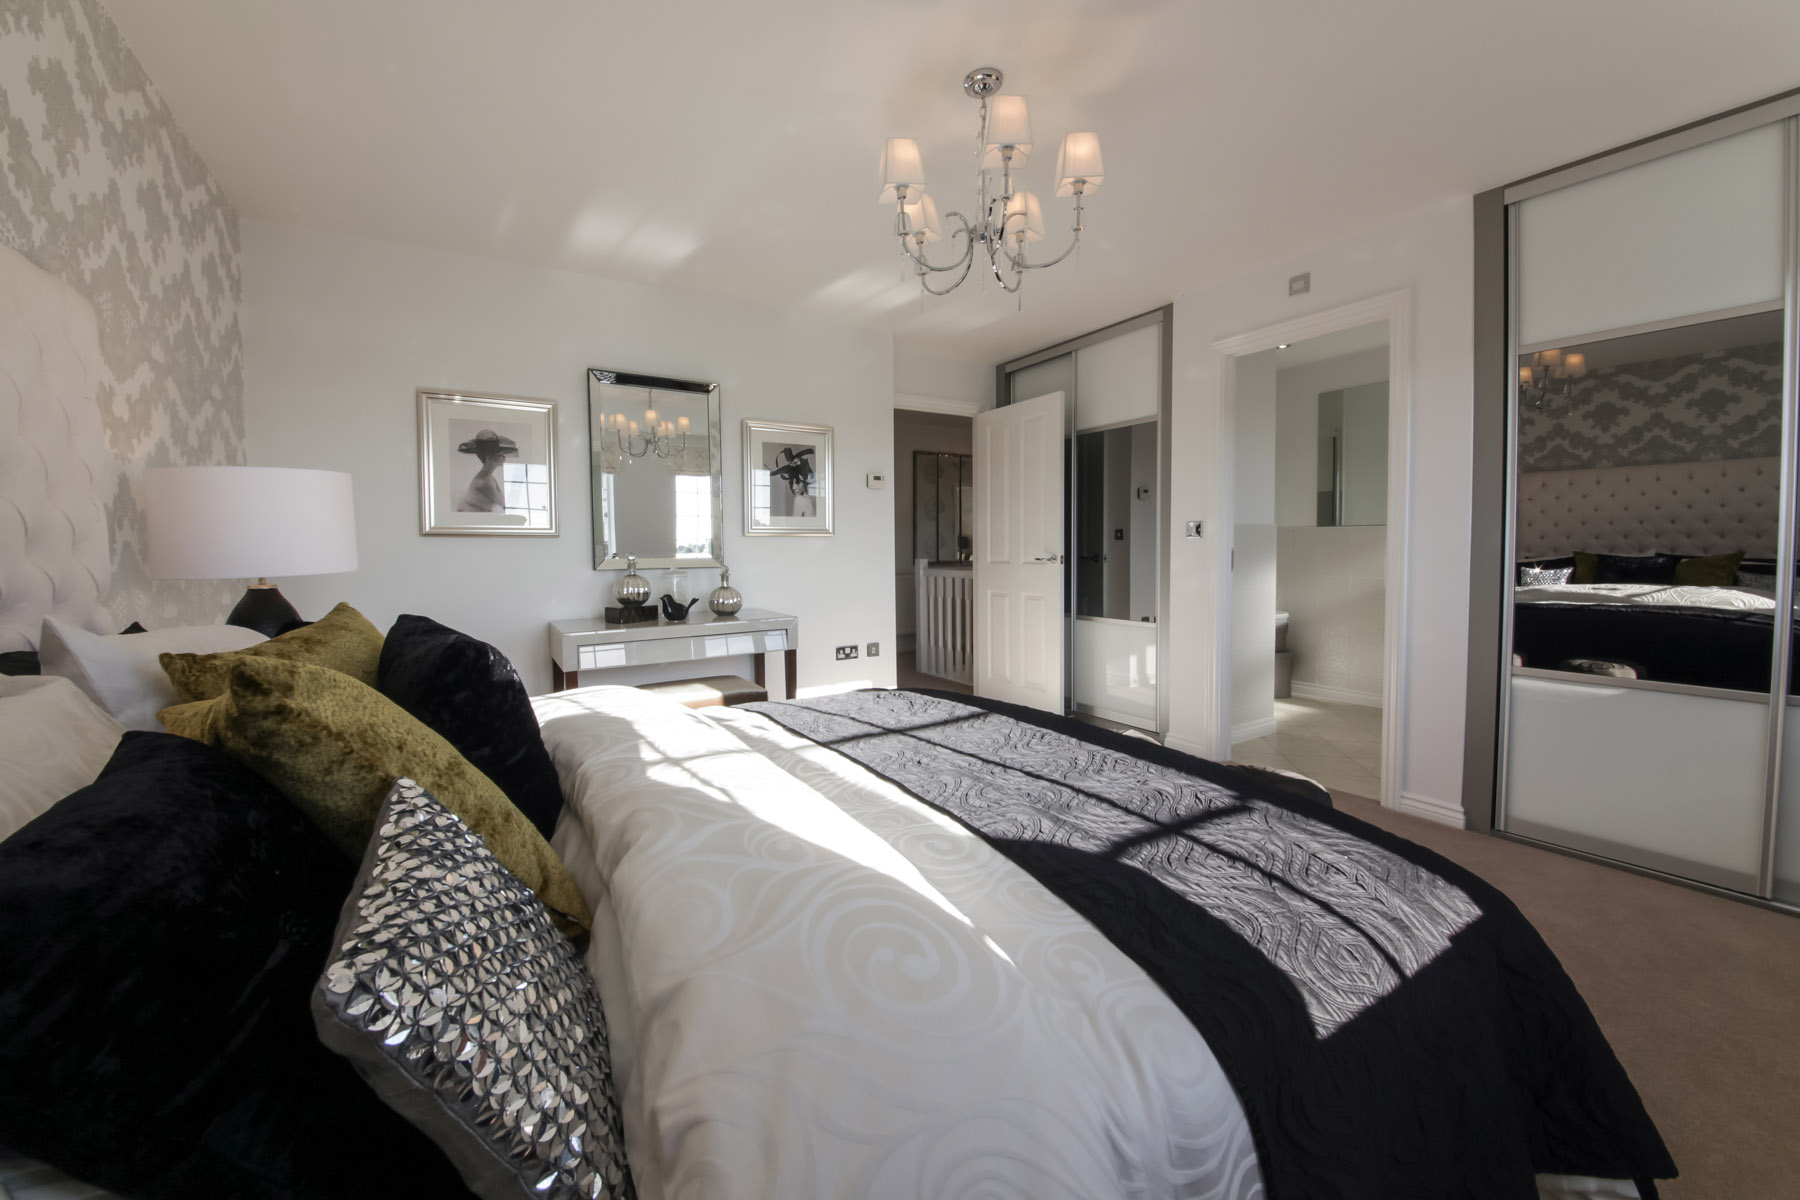 Lavenham bedroom with wardrobes and ensuite in view